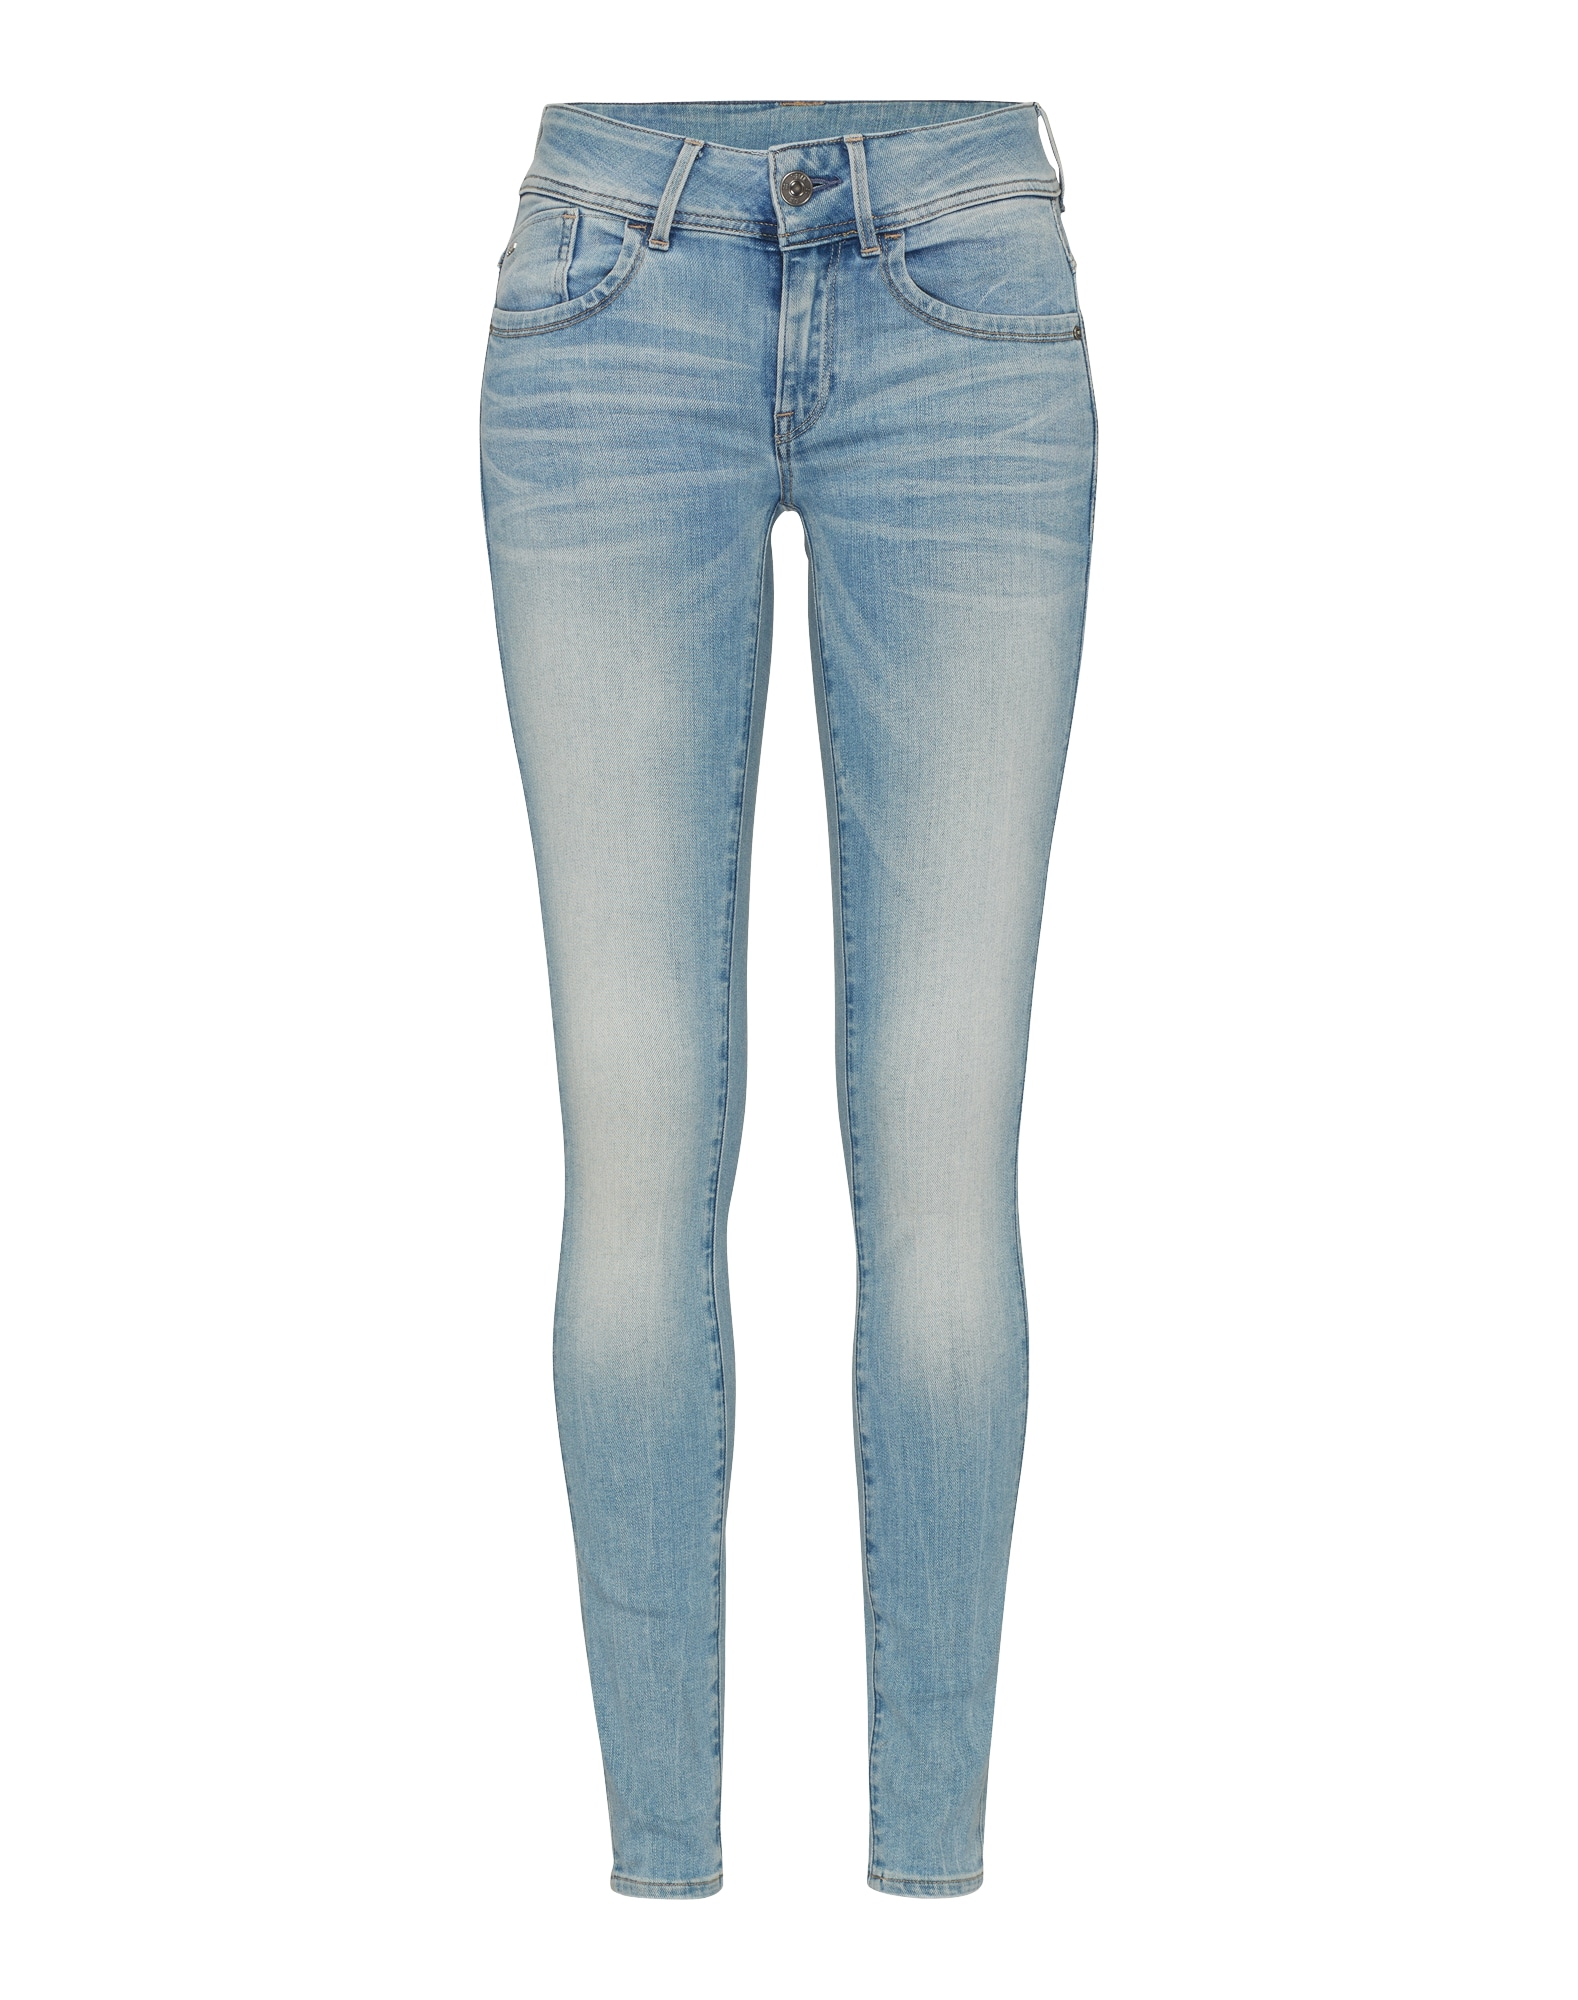 G-STAR RAW Dames Jeans Lynn Mid Slim blue denim